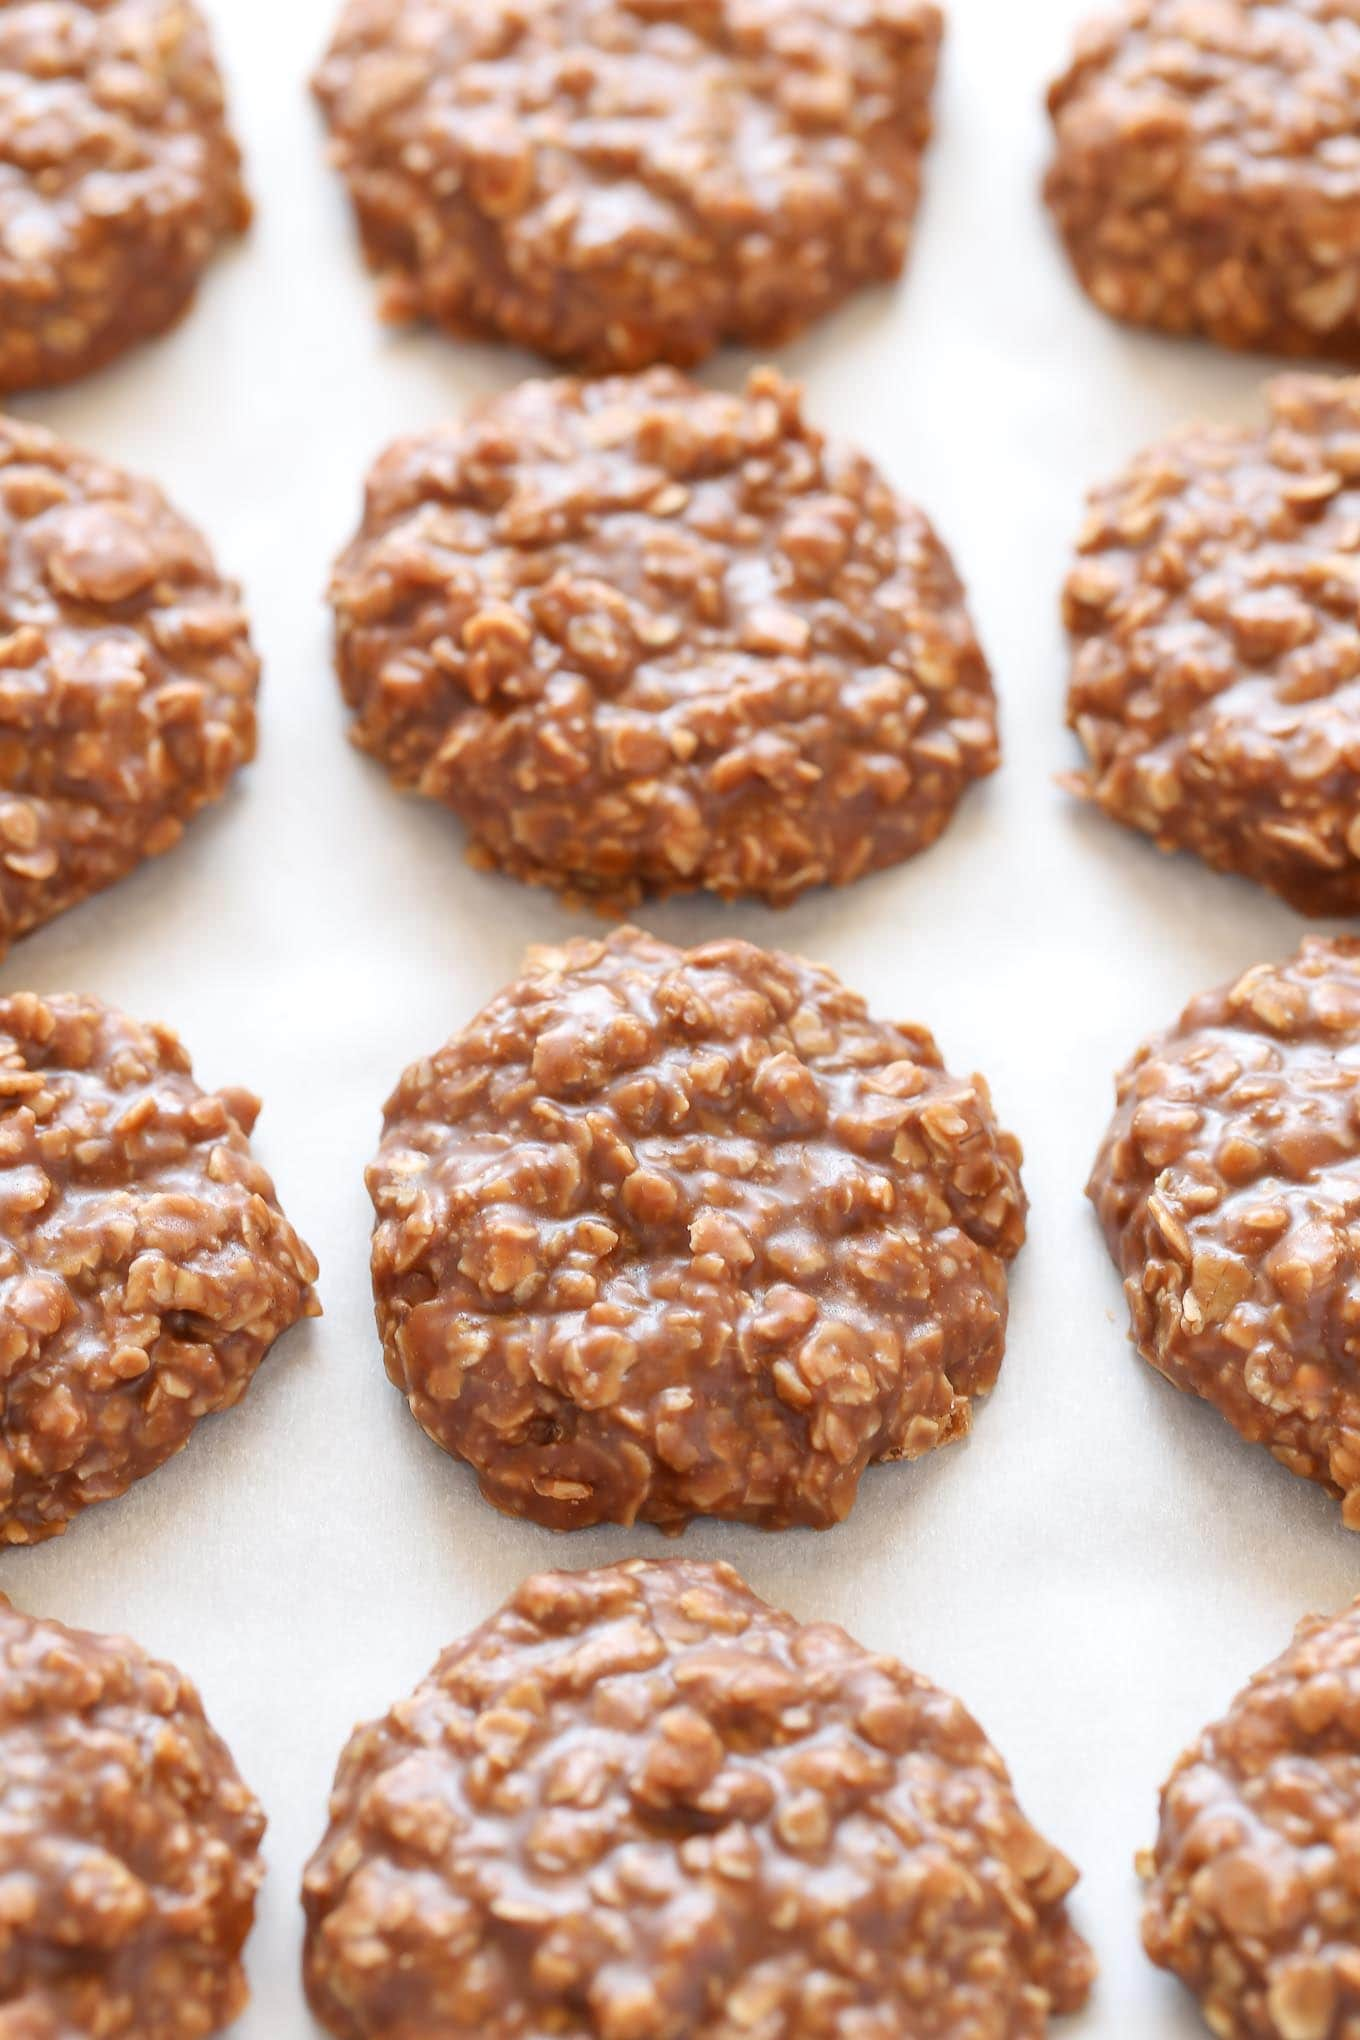 These Classic No-Bake Cookies only require a few simple ingredients and are incredibly easy to make. Loaded with peanut butter, oats, and cocoa powder, these cookies are perfect for an easy dessert!